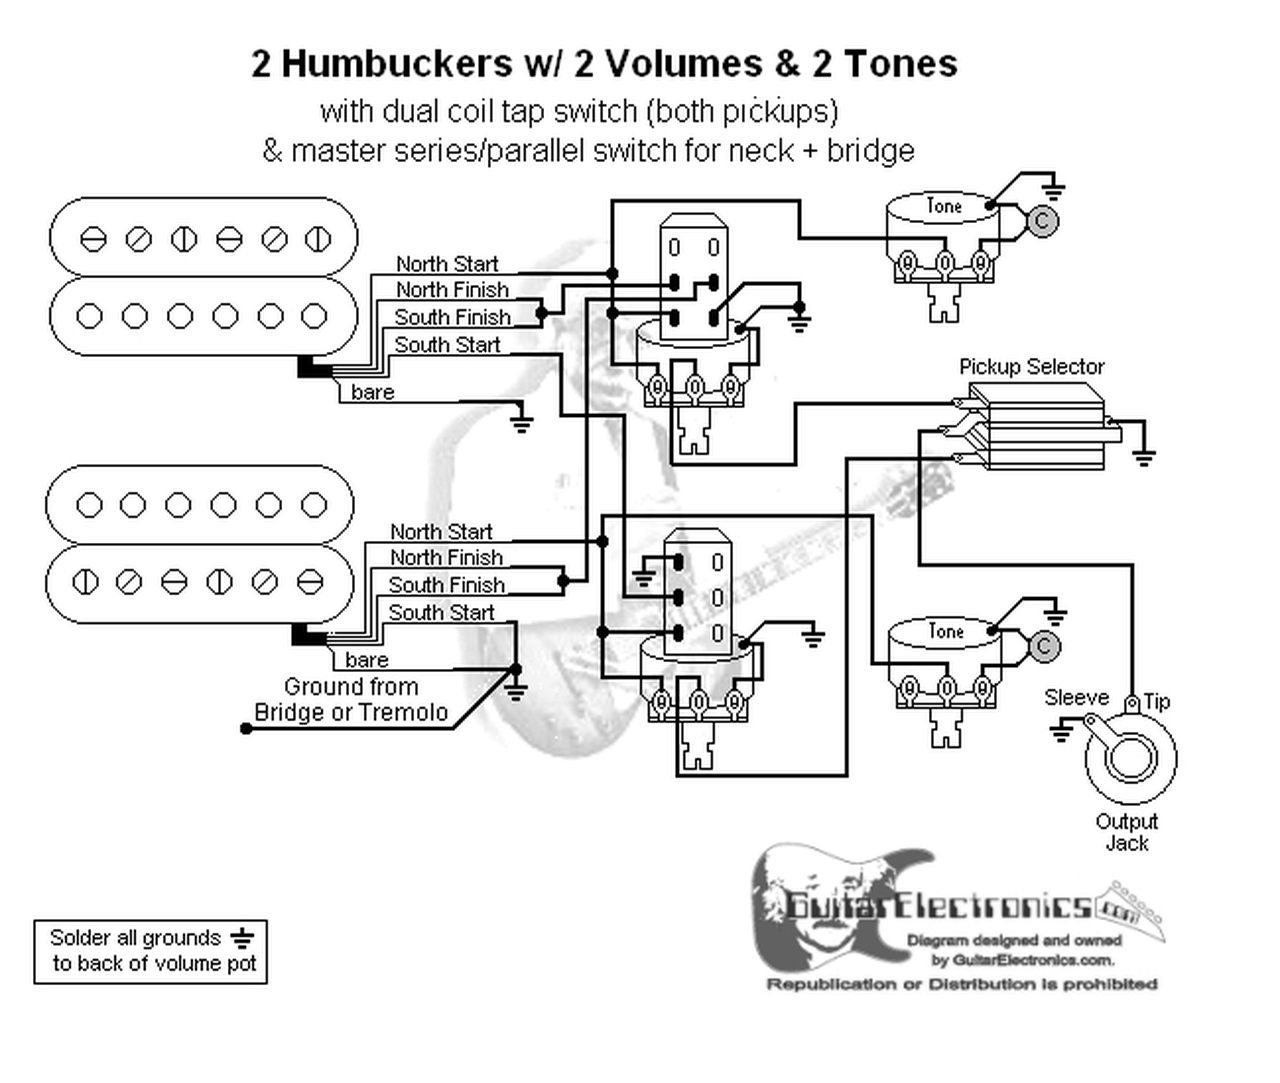 2 HBs/3-Way Toggle/2 Vol/2 Tones/Coil Tap & Series Parallel